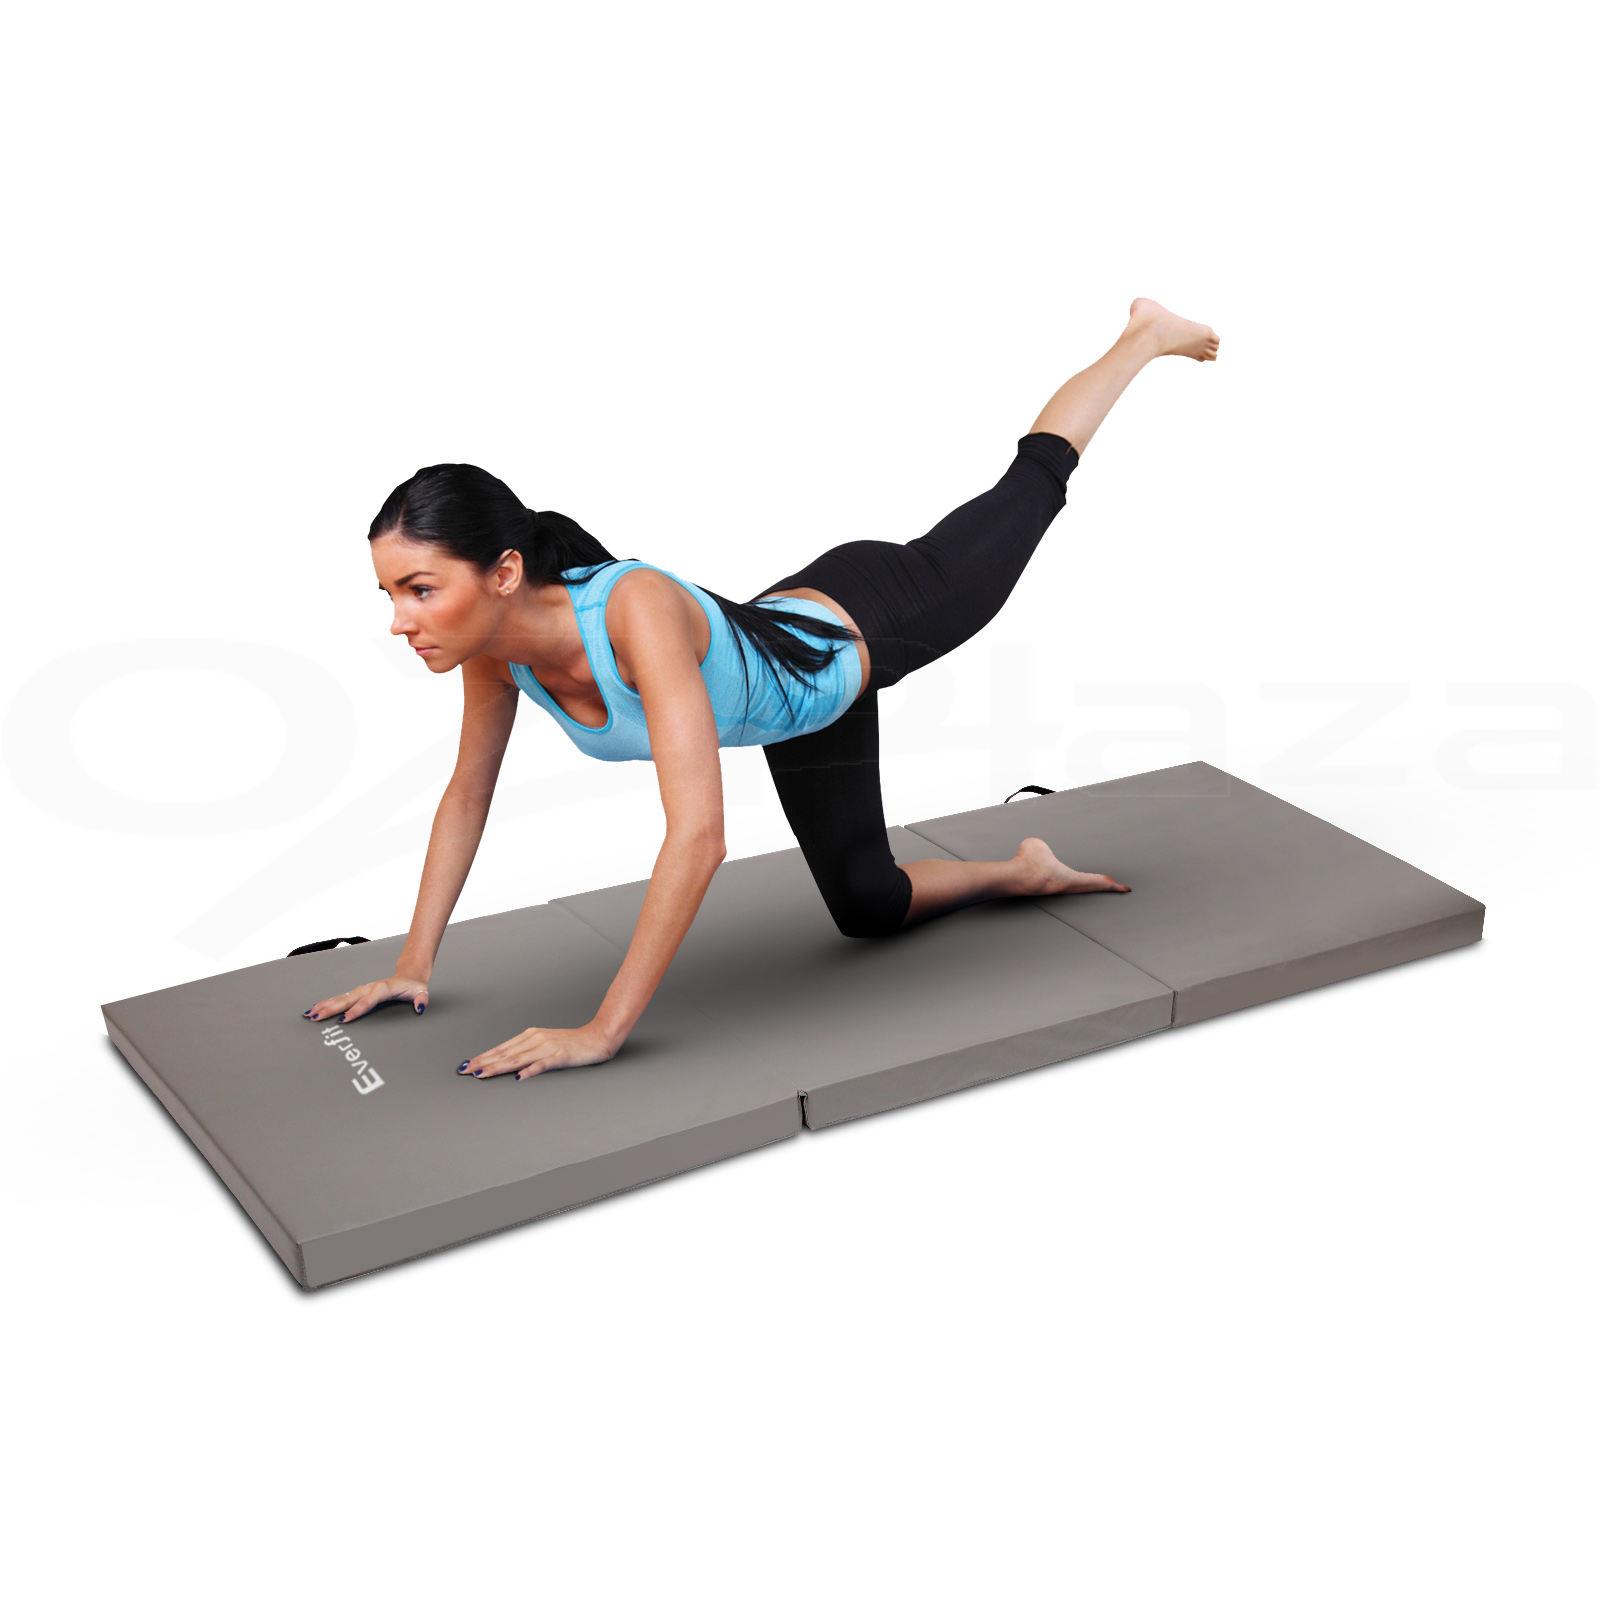 Good Workout Mat: 6CM Folding Exercise Mat Floor Dance YoGa Gymnastics